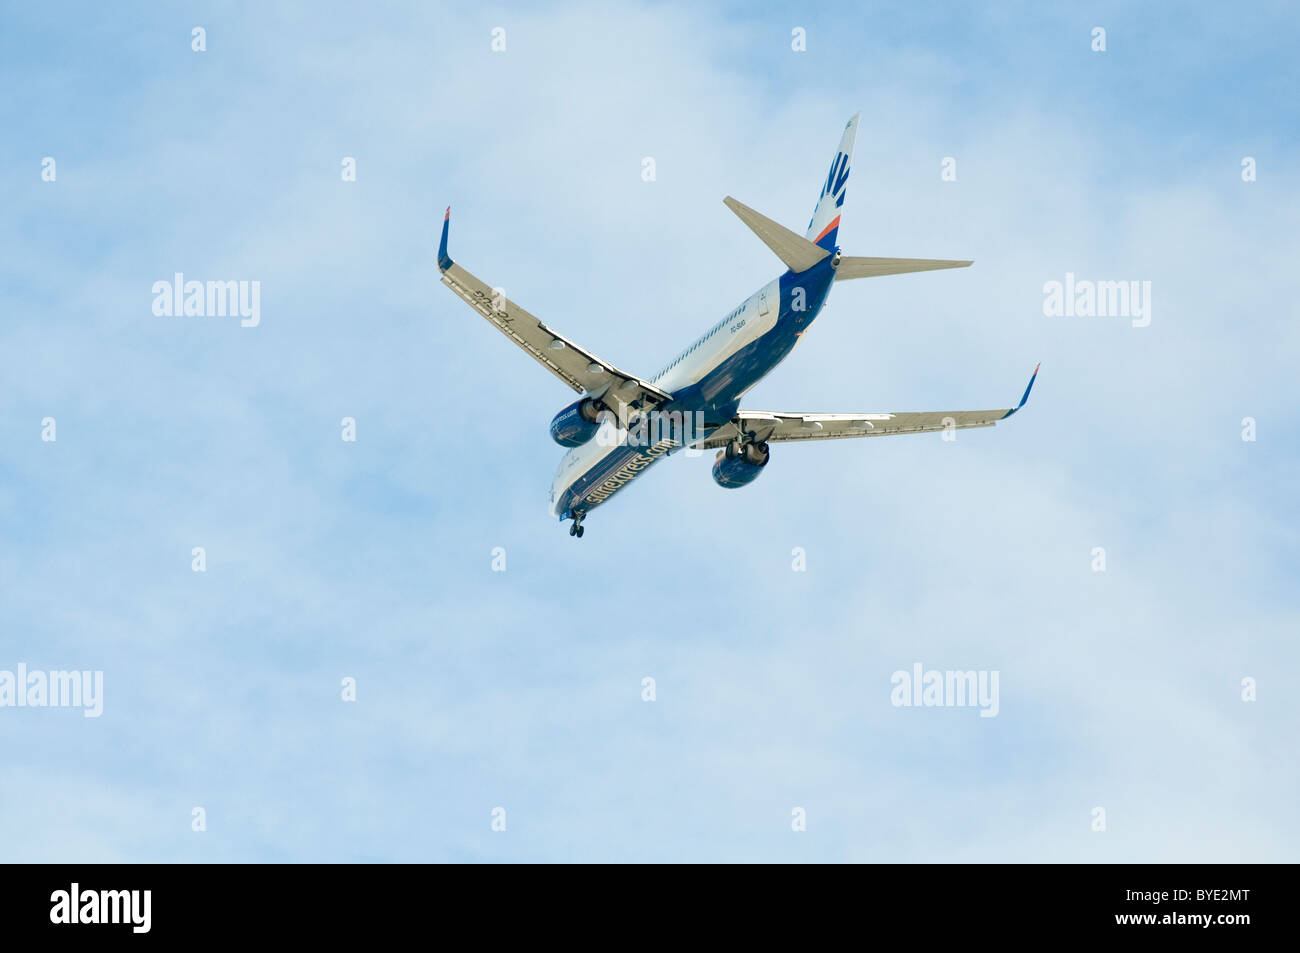 low flying commercial airliner plane planes airplane airplanes airport landing approaching landing take off taking - Stock Image